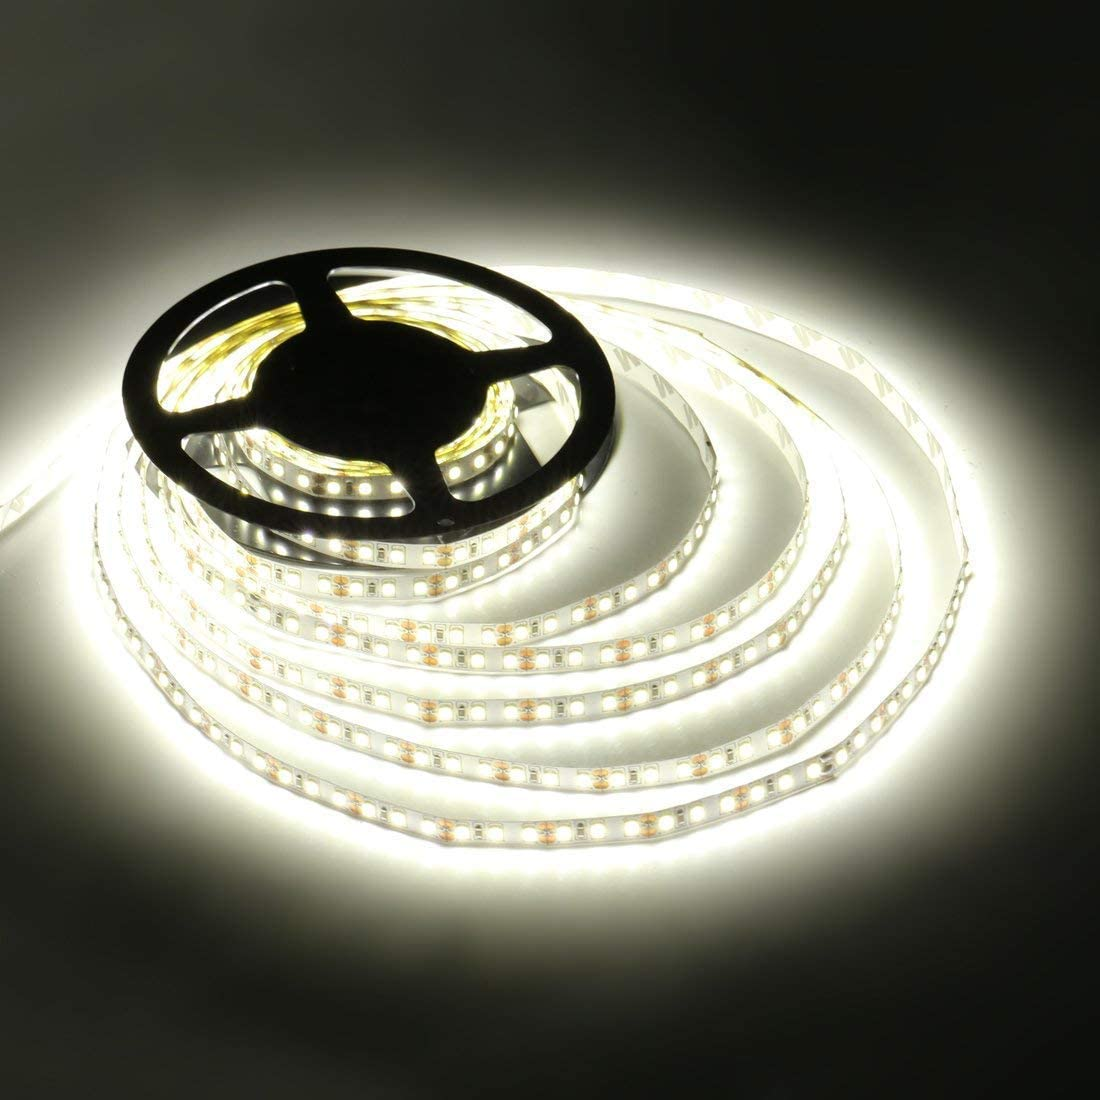 Ledmo Tiras Led No Impermeable, color Blanco, 12V SMD 2835, 600 Leds, 6000k frio 5 m, Cinta15 lm/Leds Brillo Alto Strip Light IP20